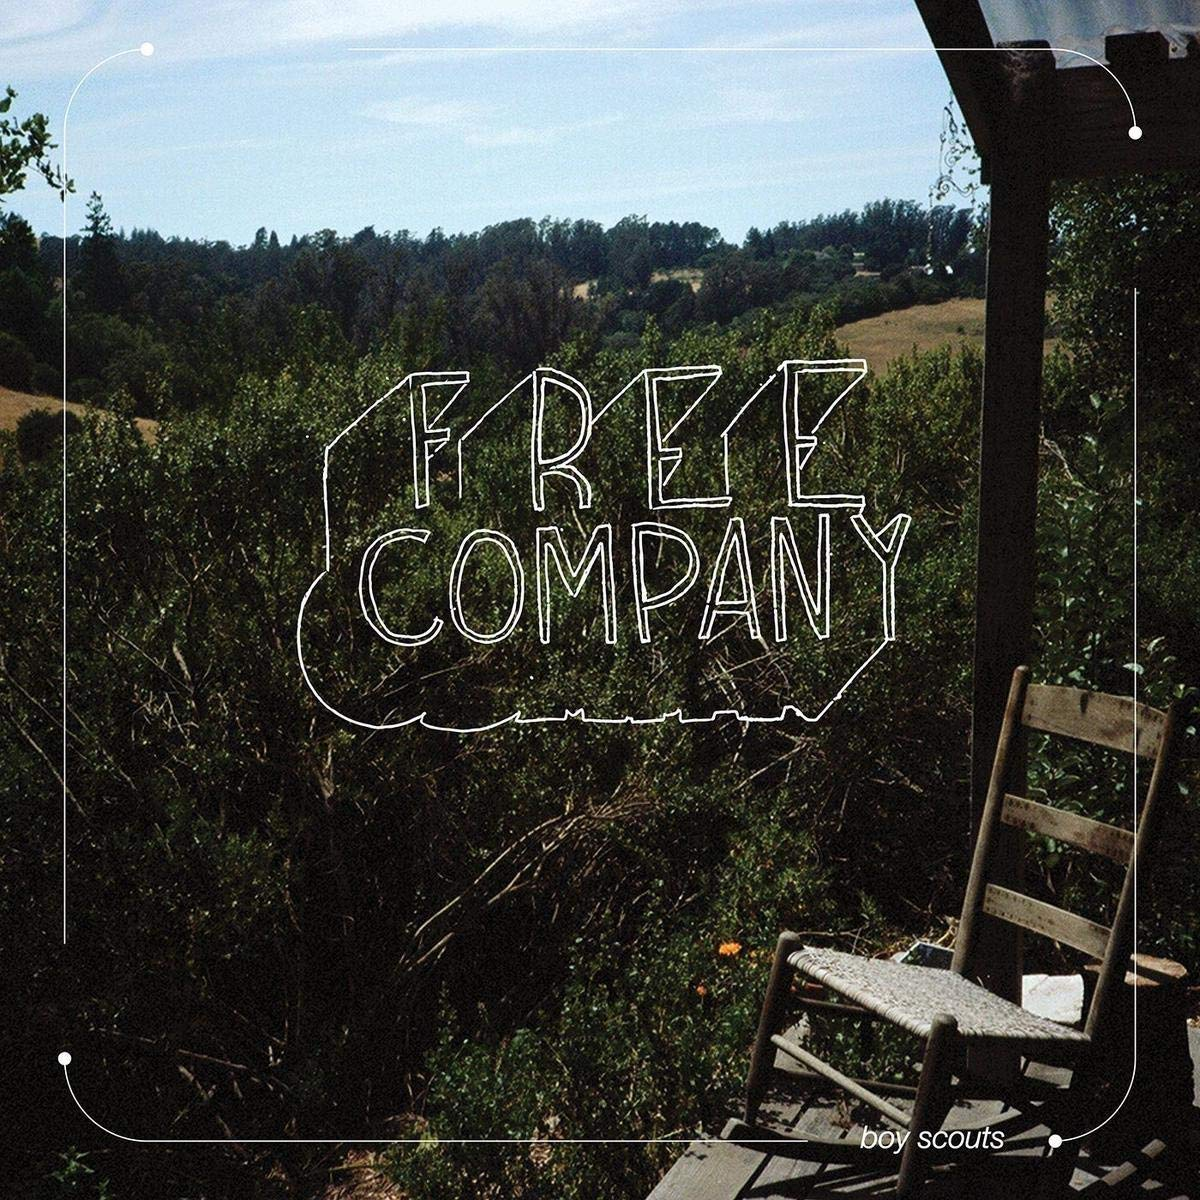 Boy Scouts - Free Company [Import LP]